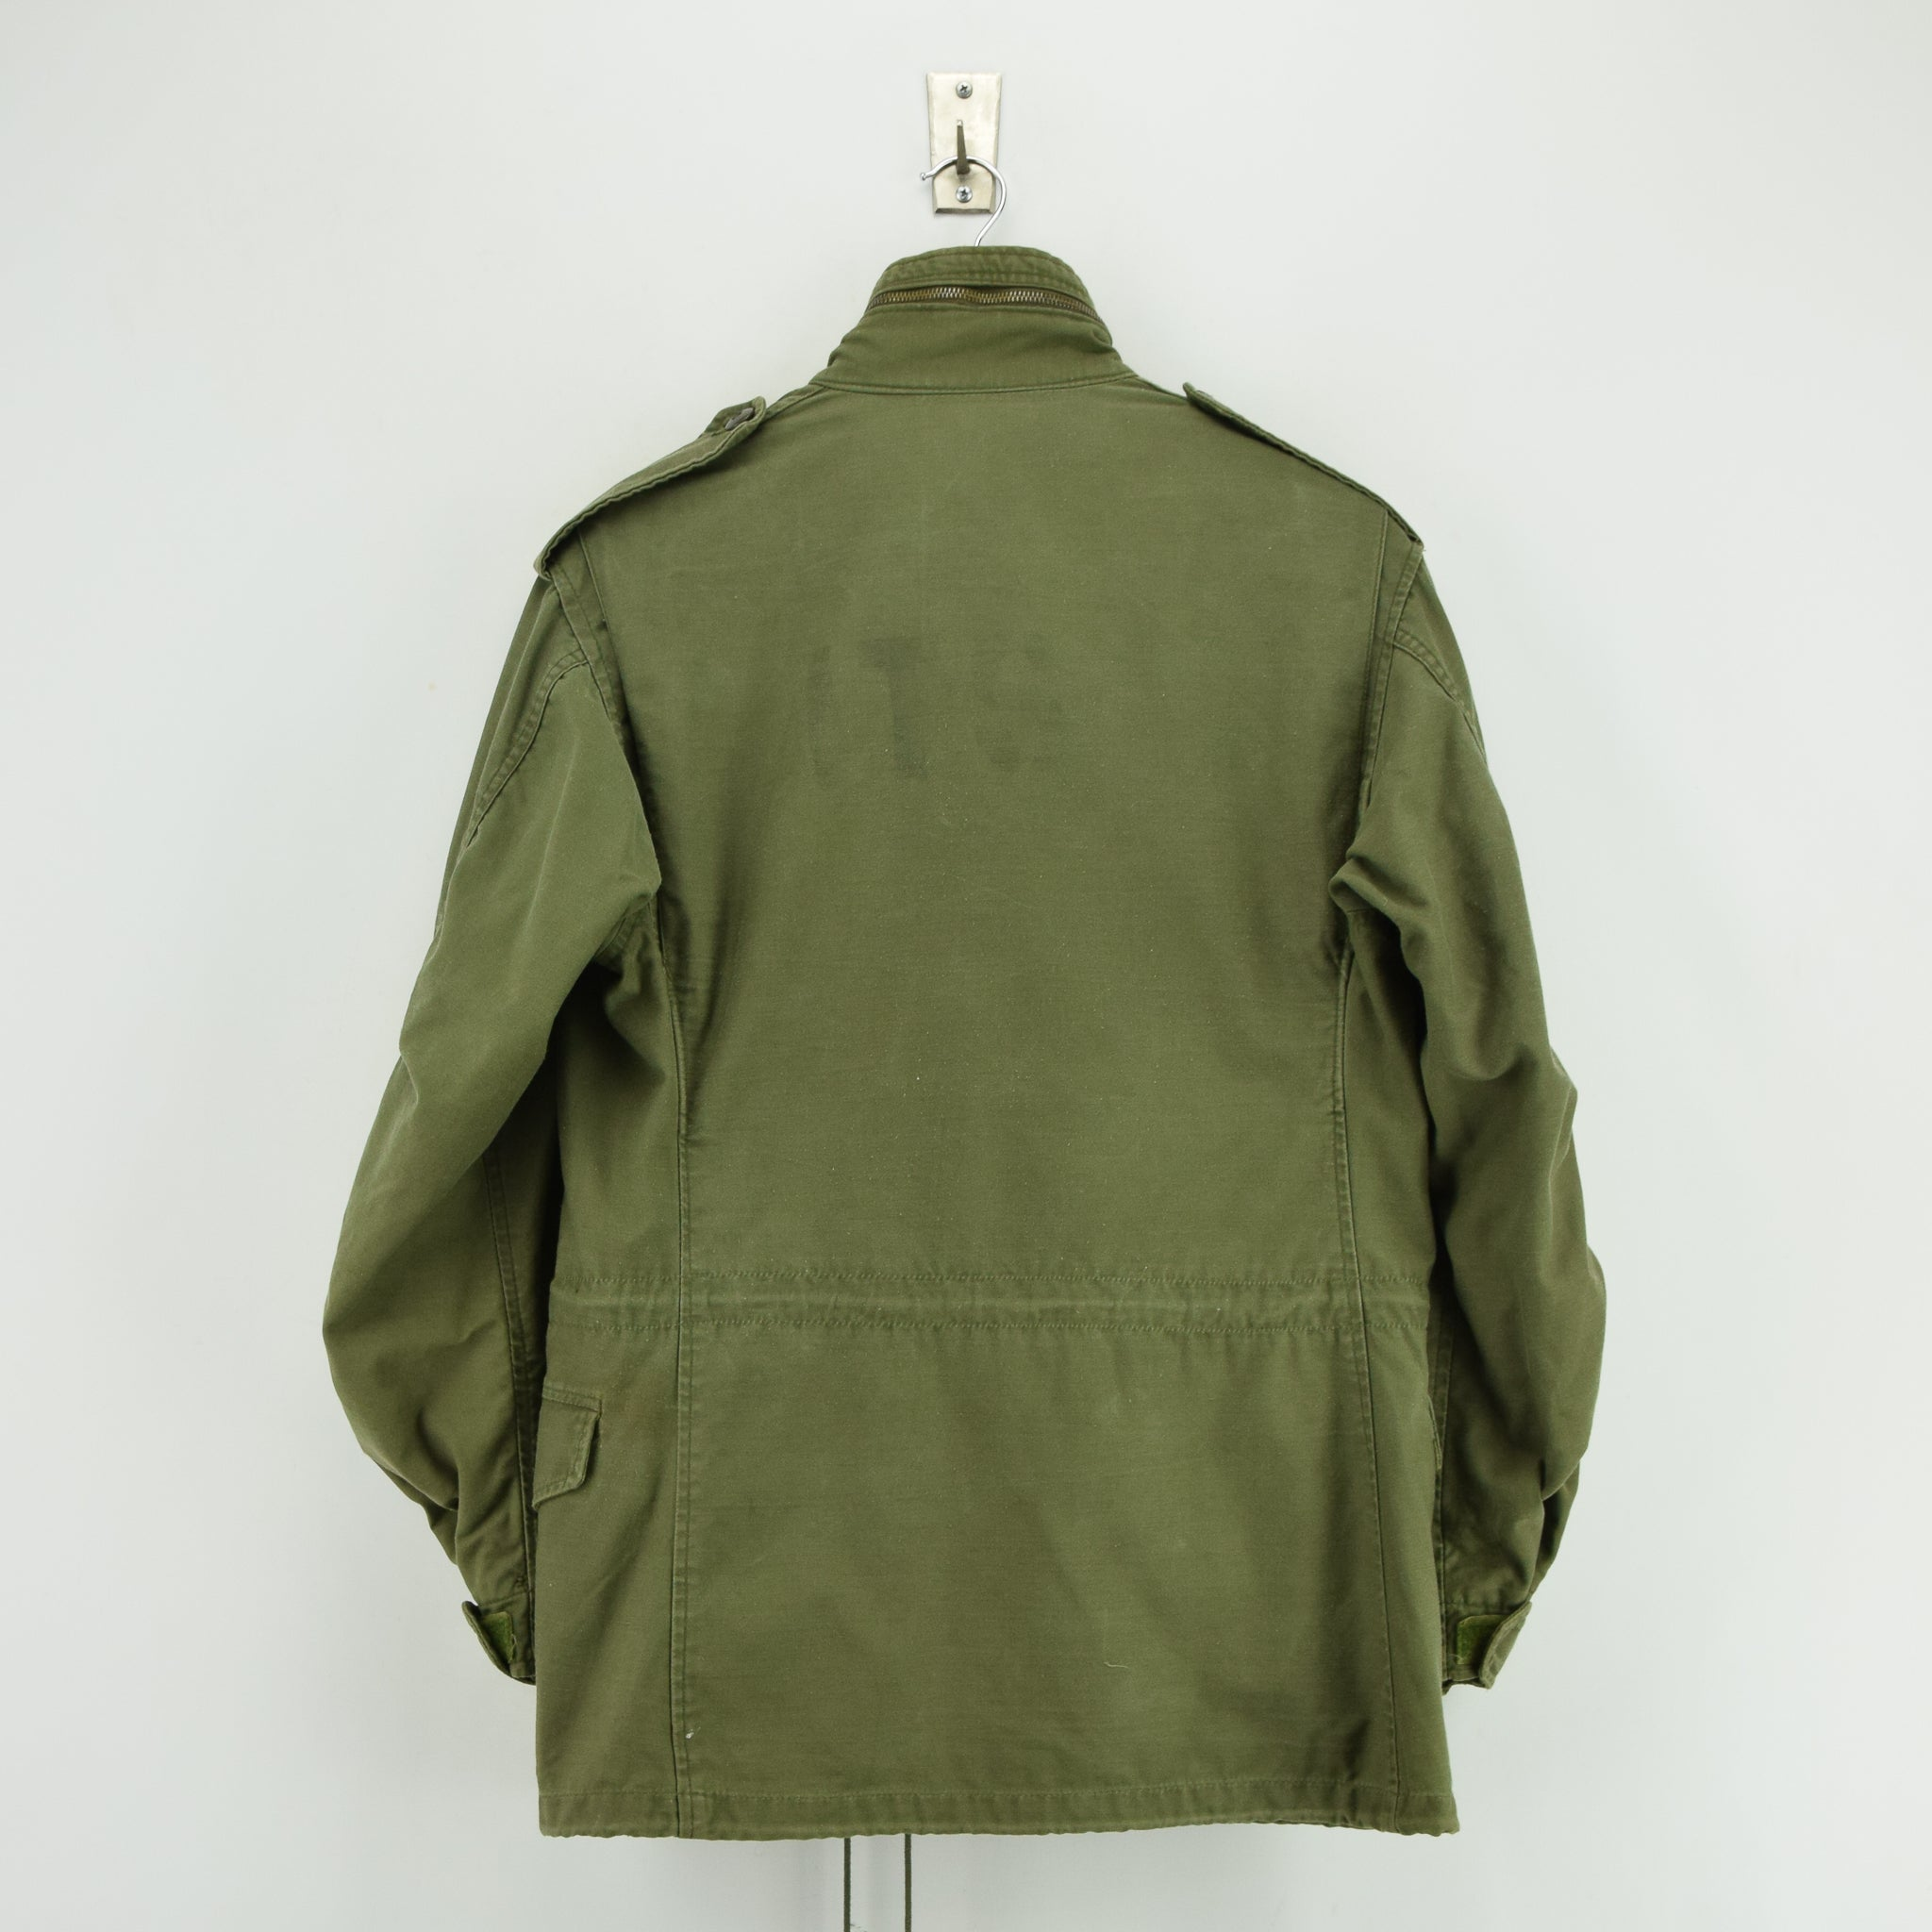 Vintage 80s Alpha Industries M-65 Green Coat Cold Weather Man's Field Jacket S back